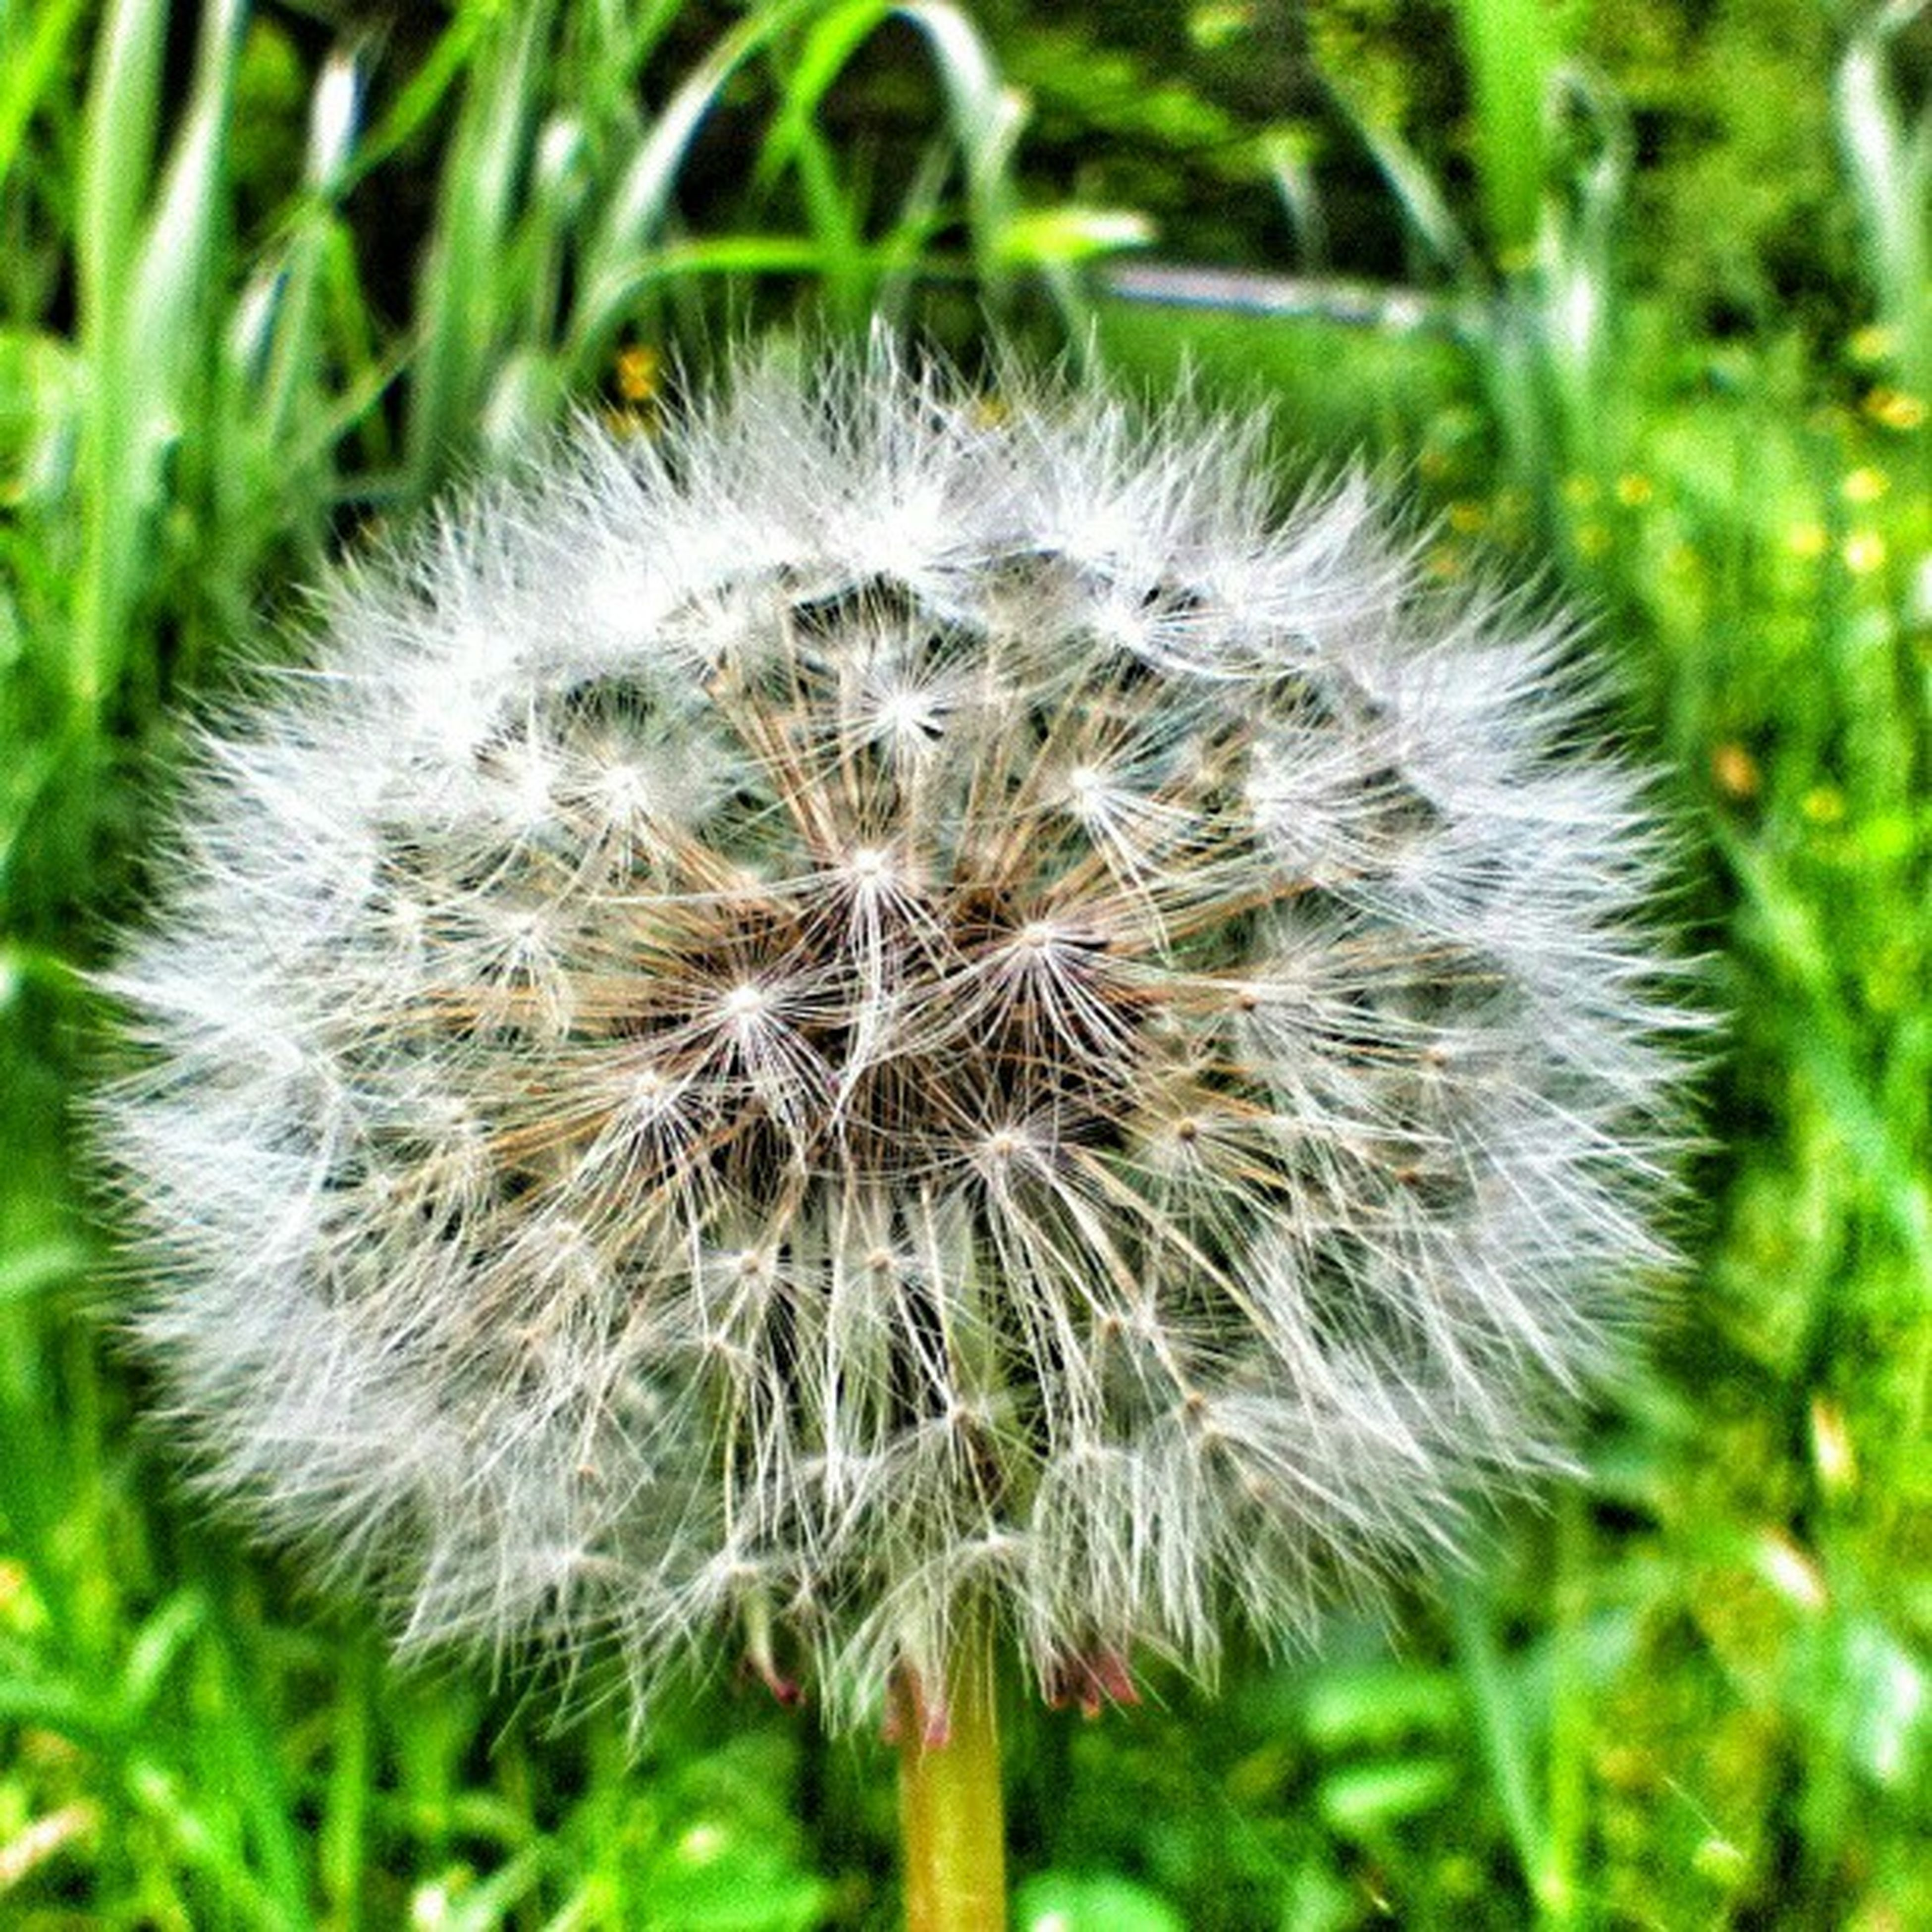 dandelion, flower, growth, fragility, freshness, close-up, flower head, nature, softness, focus on foreground, beauty in nature, uncultivated, single flower, wildflower, dandelion seed, white color, seed, plant, stem, day